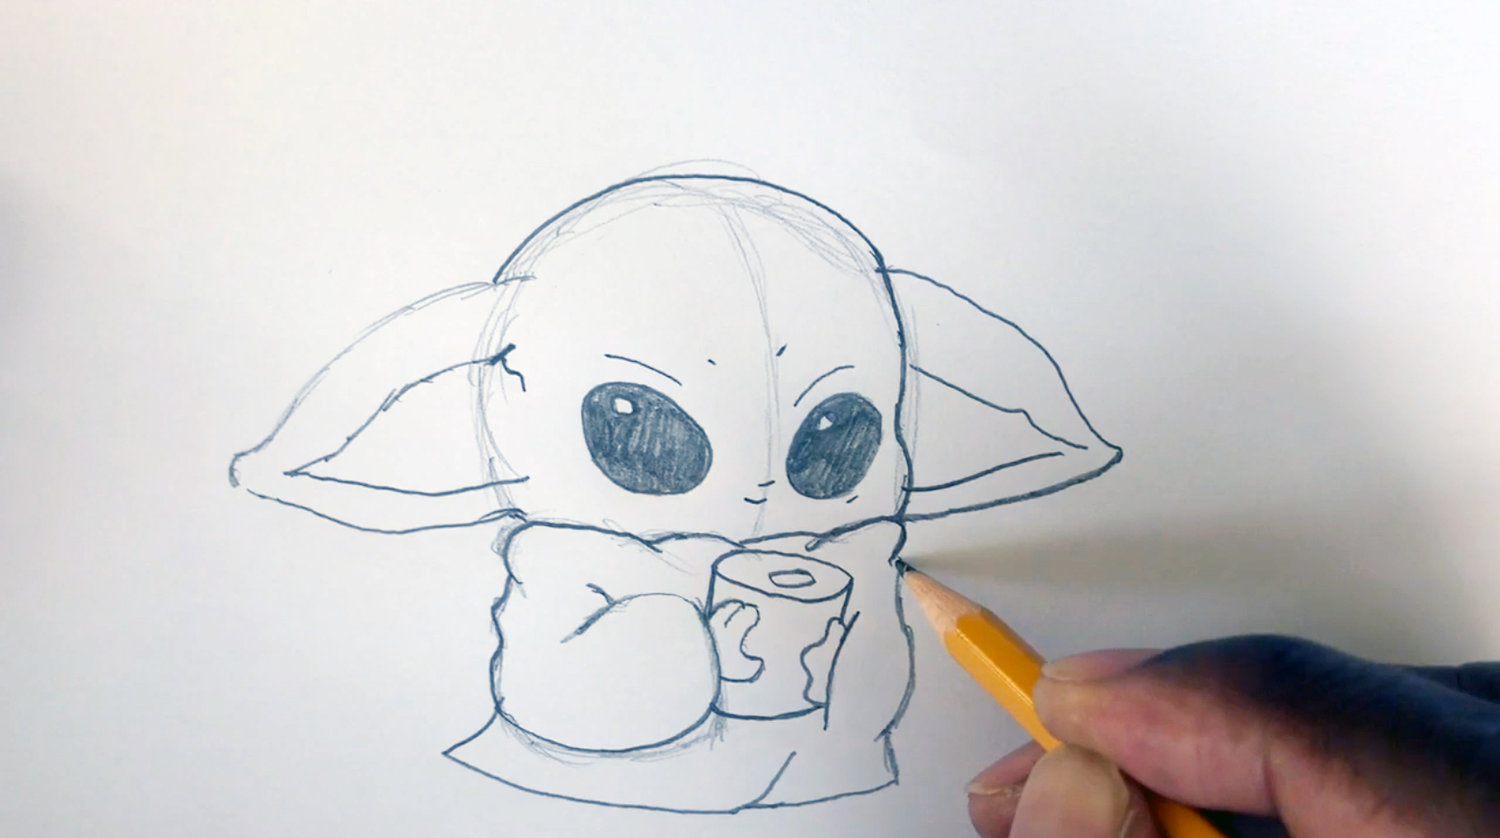 Art teacher Bryan Kilgore's second YouTube daily instructional video features Baby Yoda with TP.